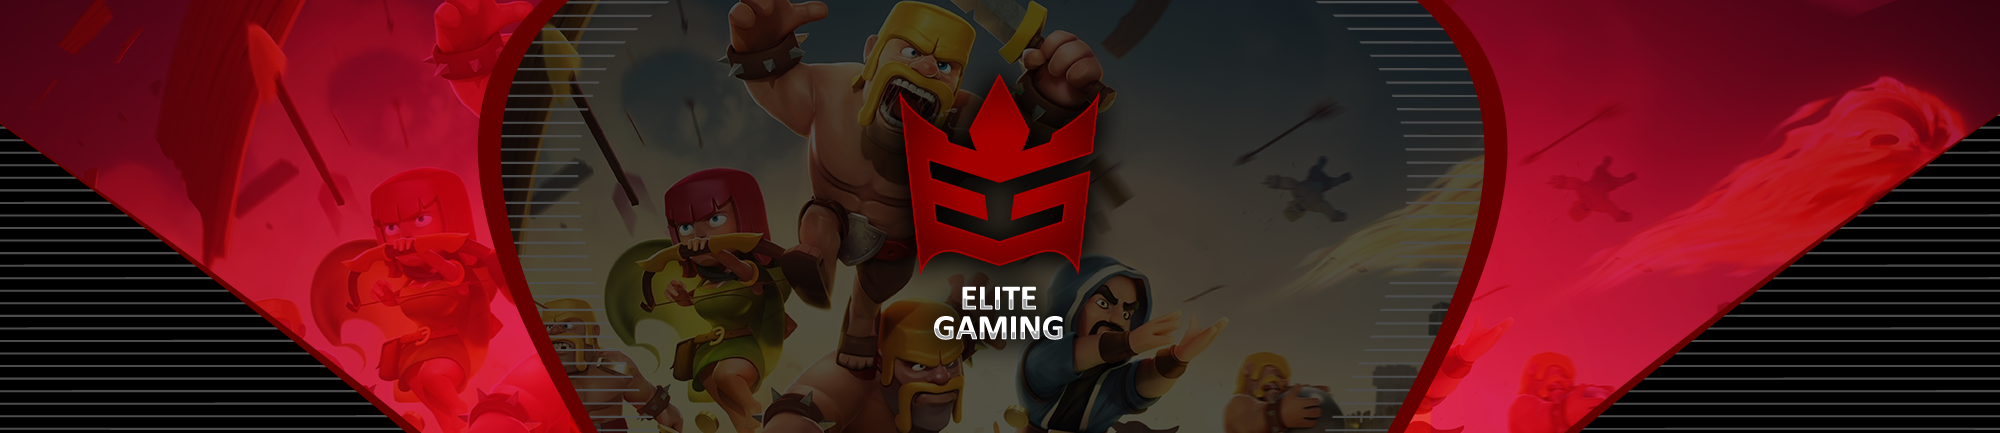 ELITE GAMING